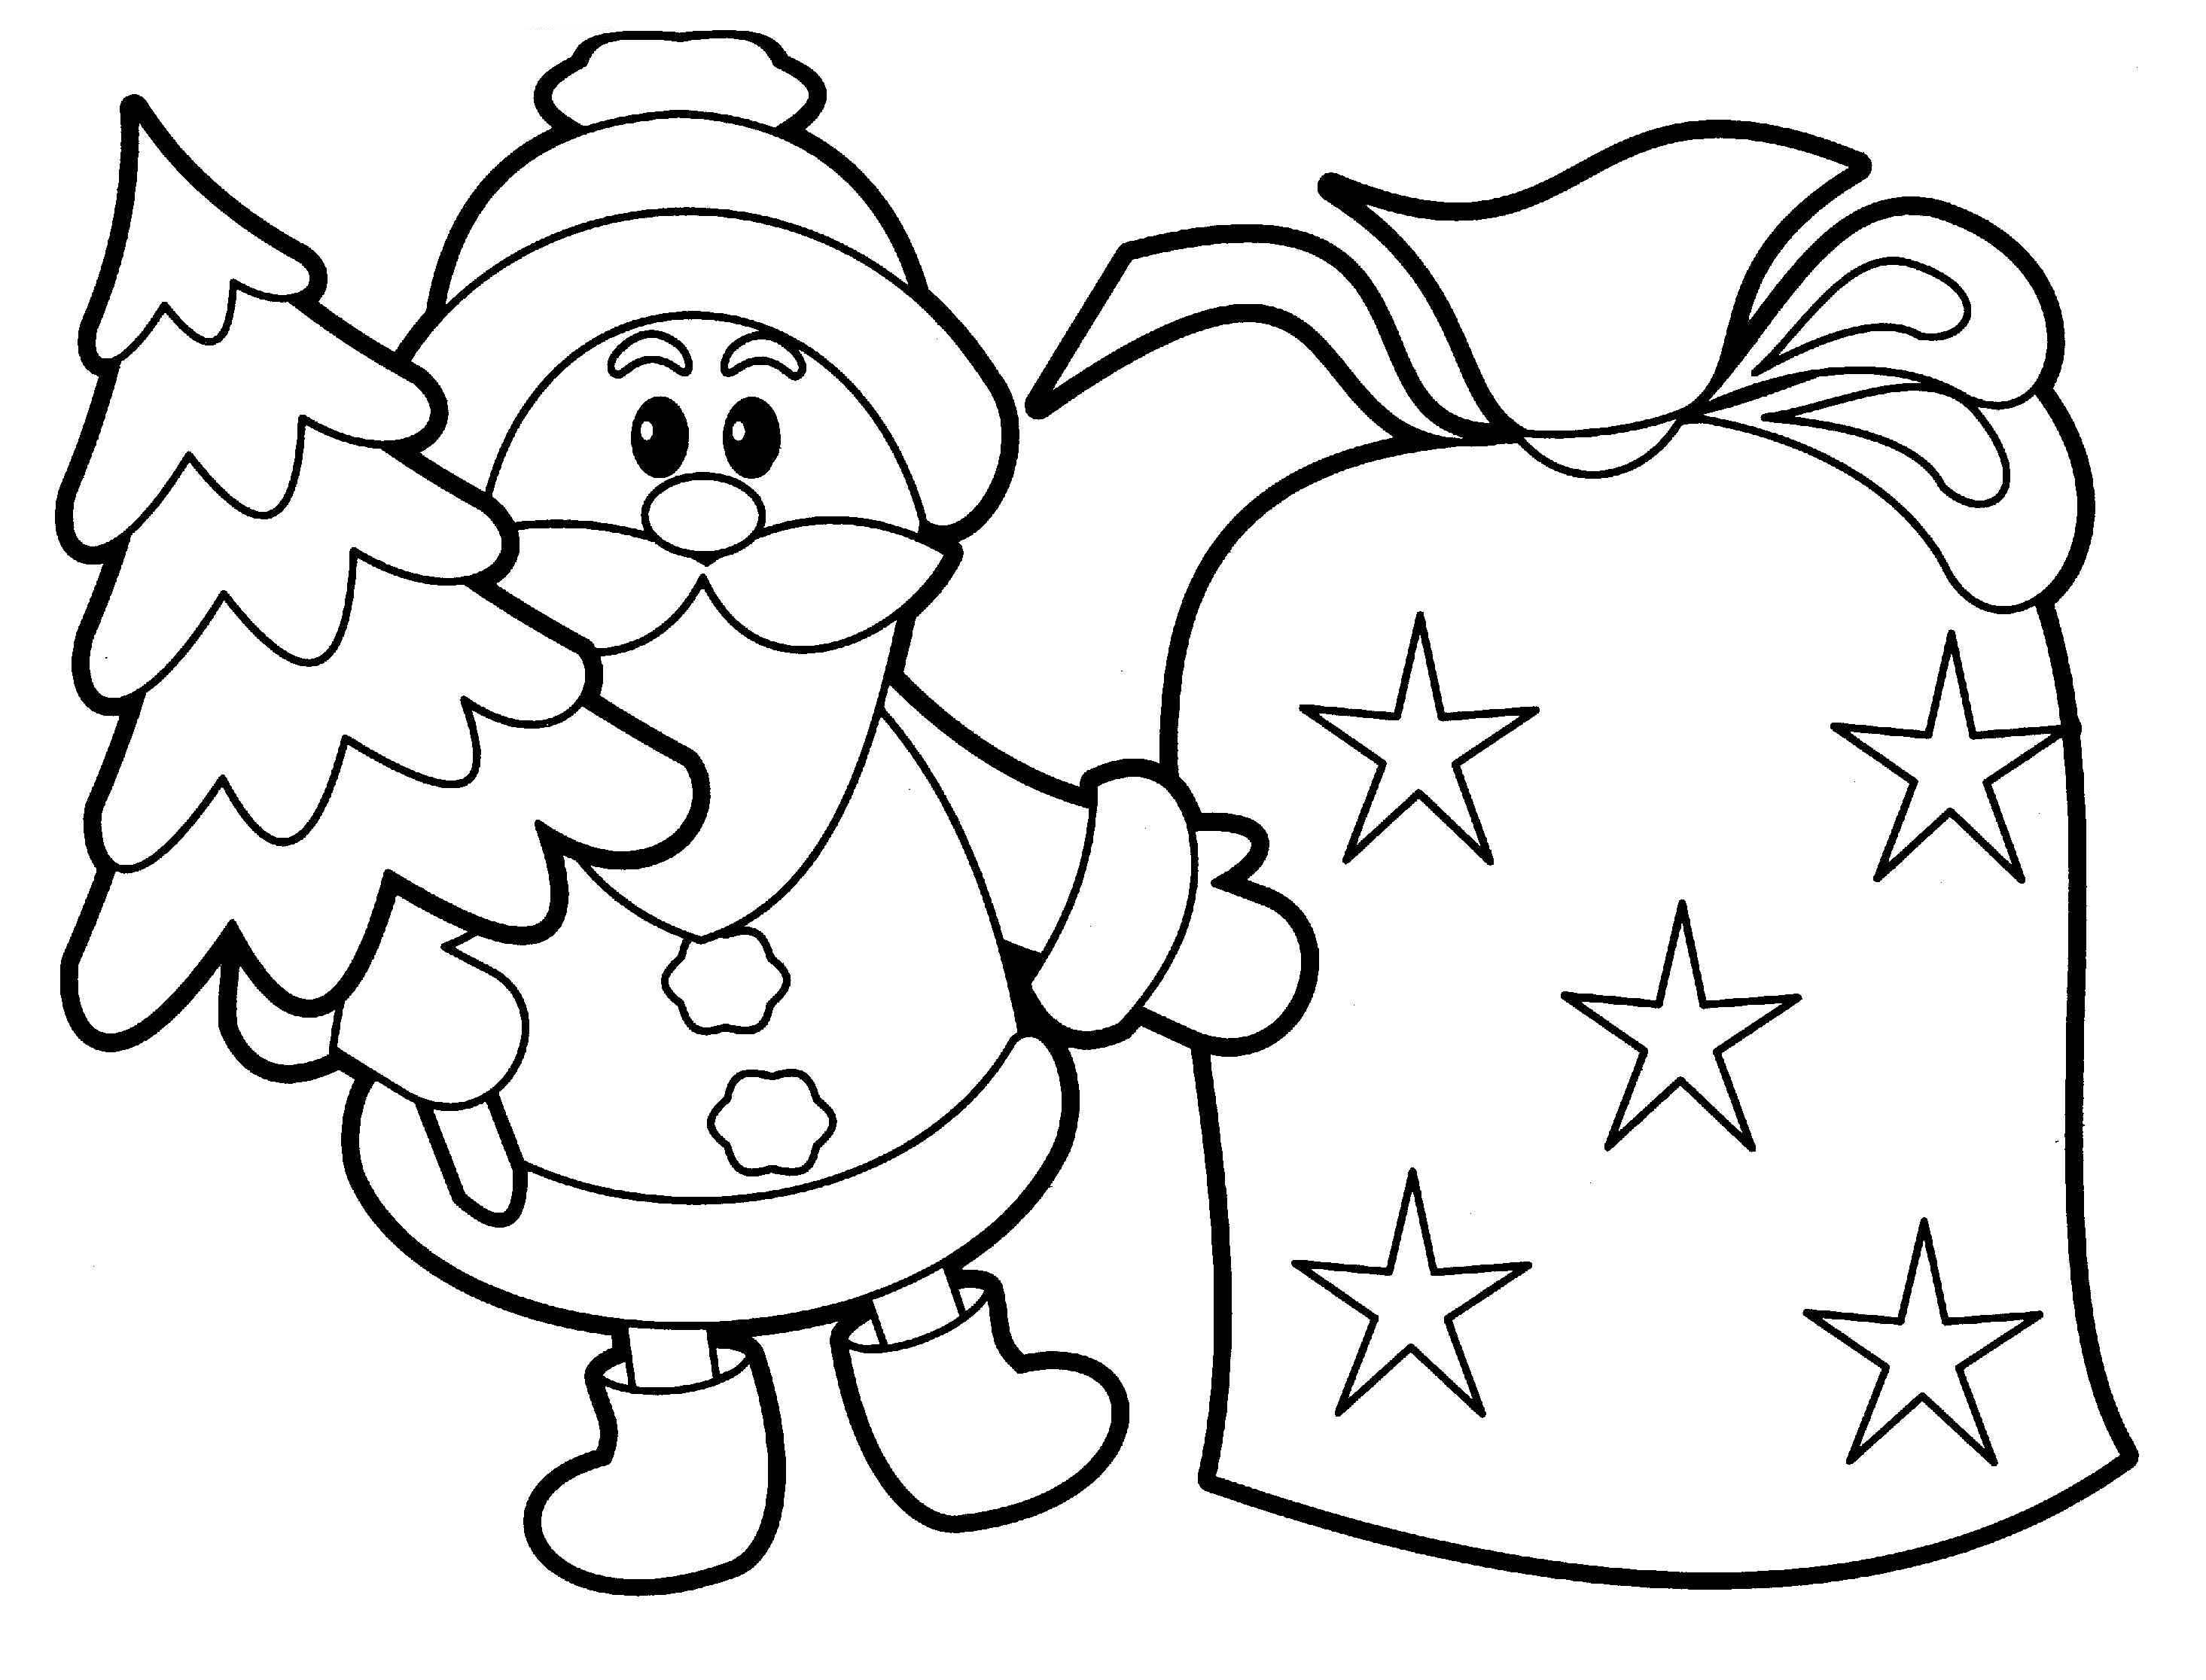 santa claus pictures to print santa claus drawing easy at getdrawings free download pictures santa to claus print